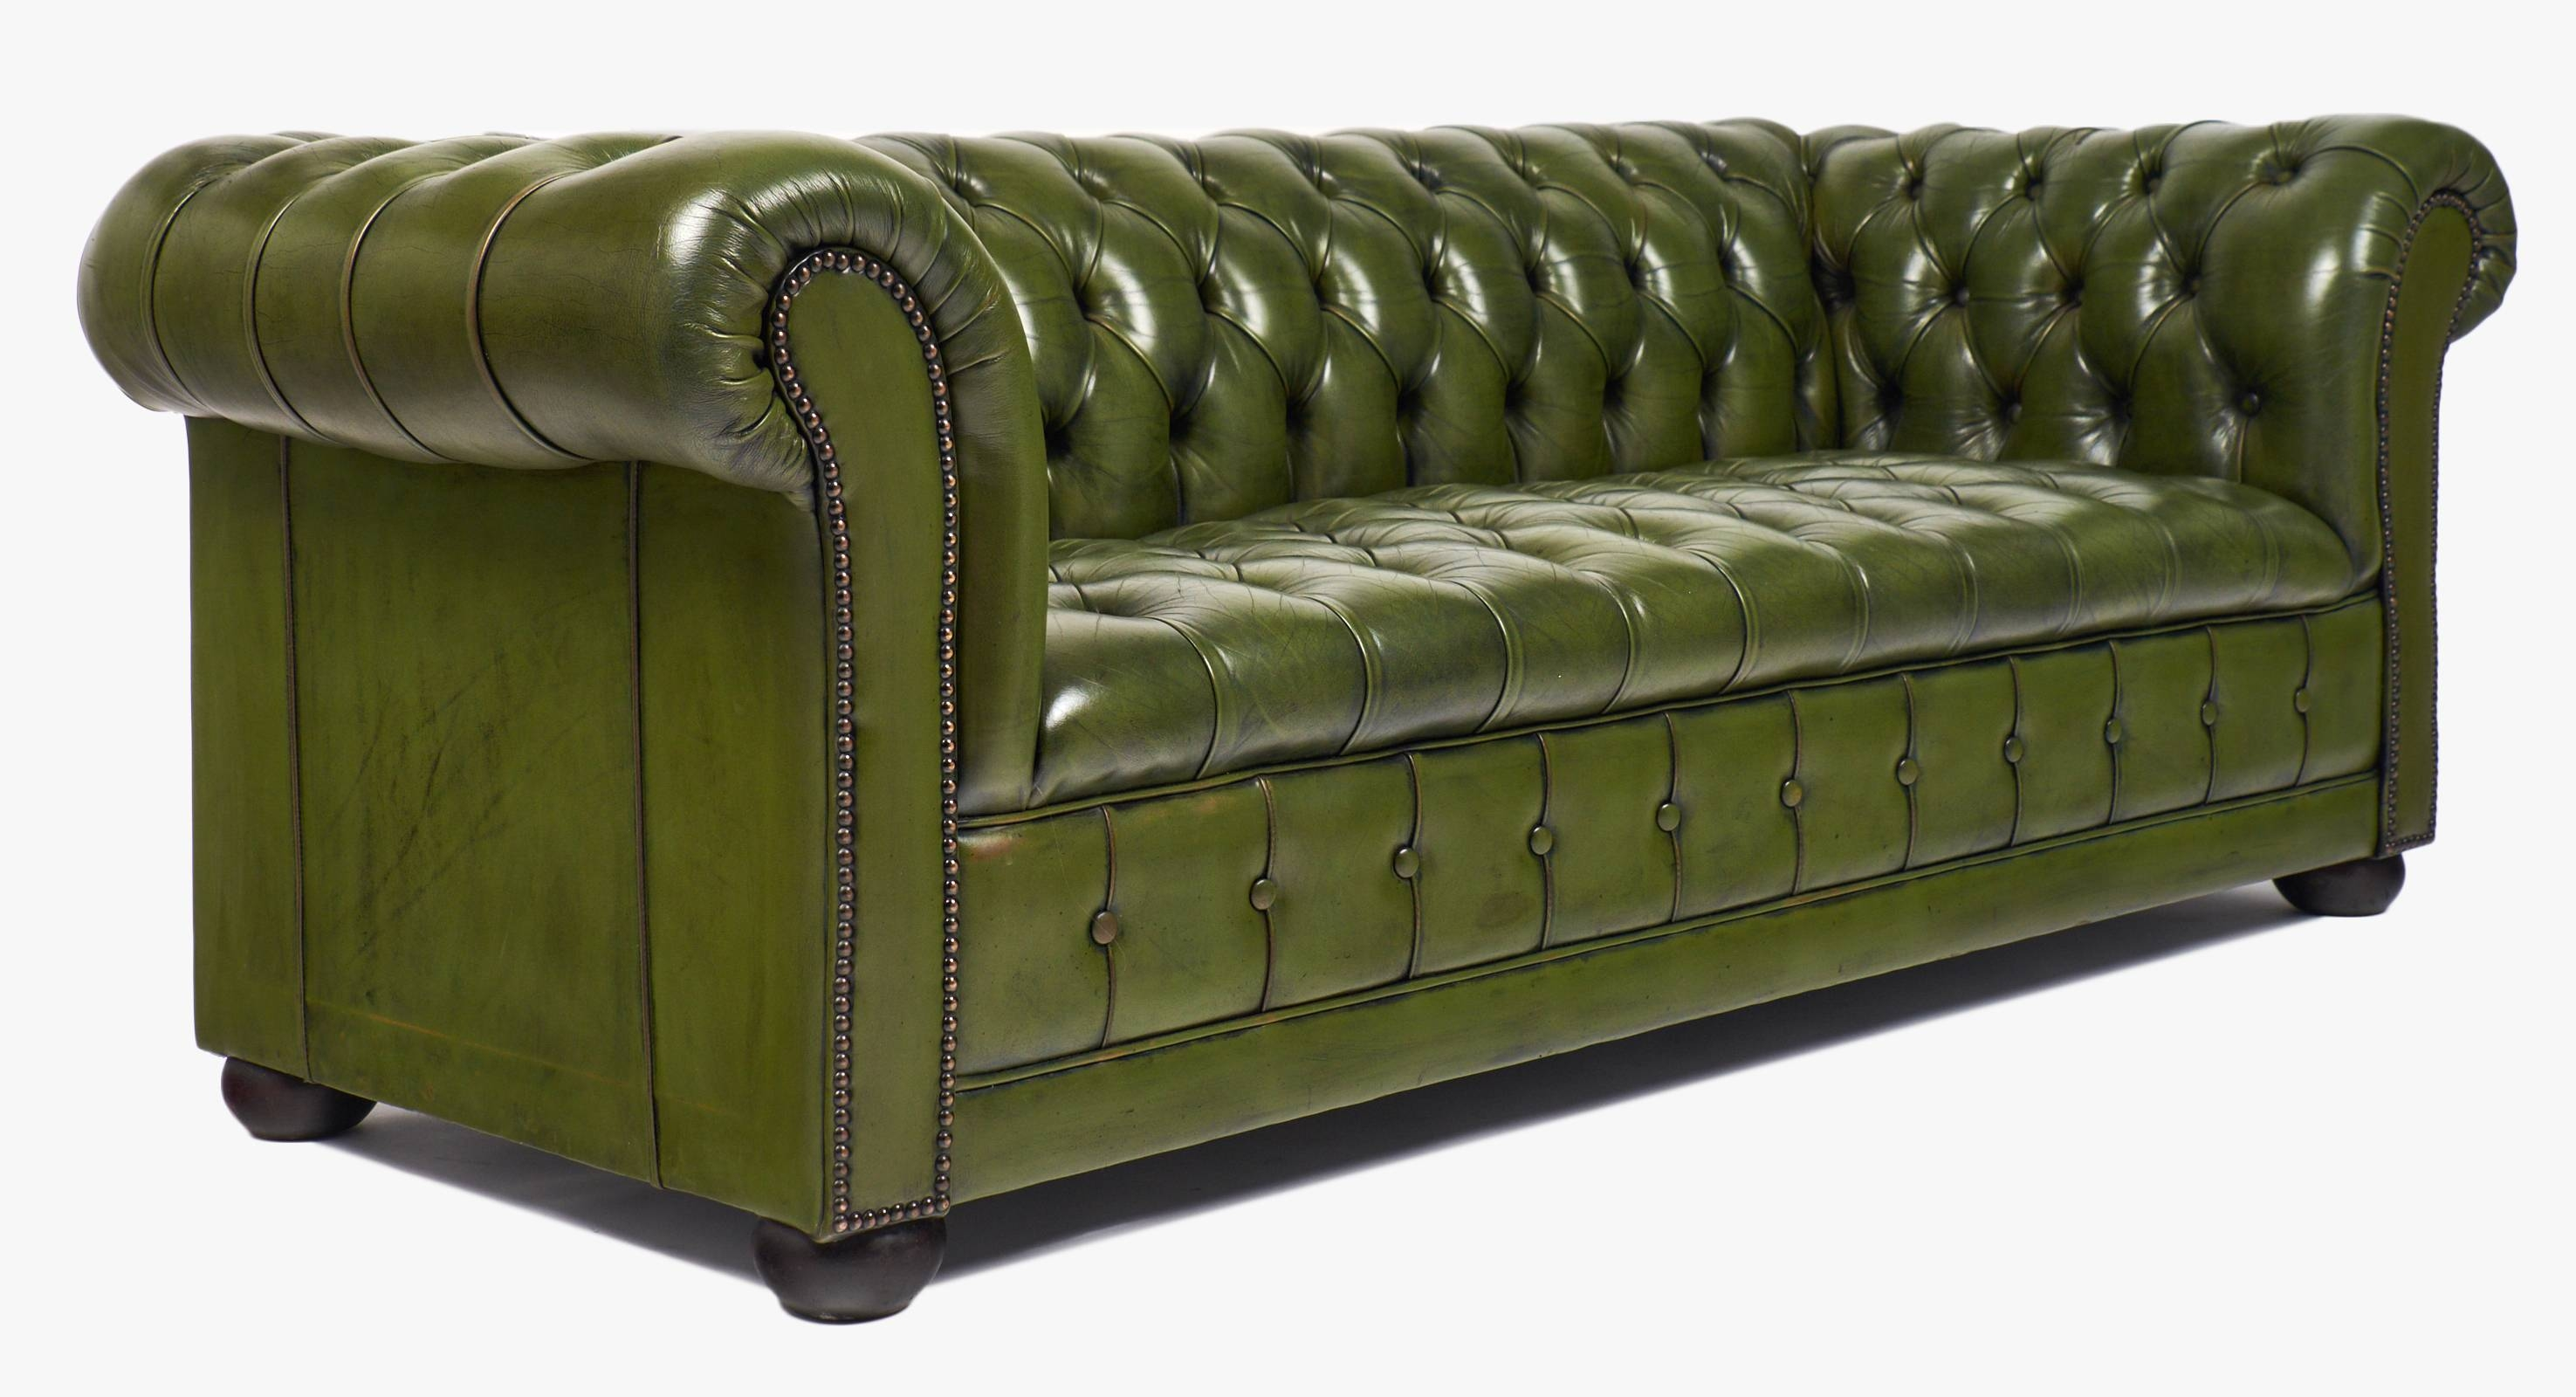 Vintage Green Leather Chesterfield Sofa - Jean Marc Fray with Vintage Chesterfield Sofas (Image 27 of 30)